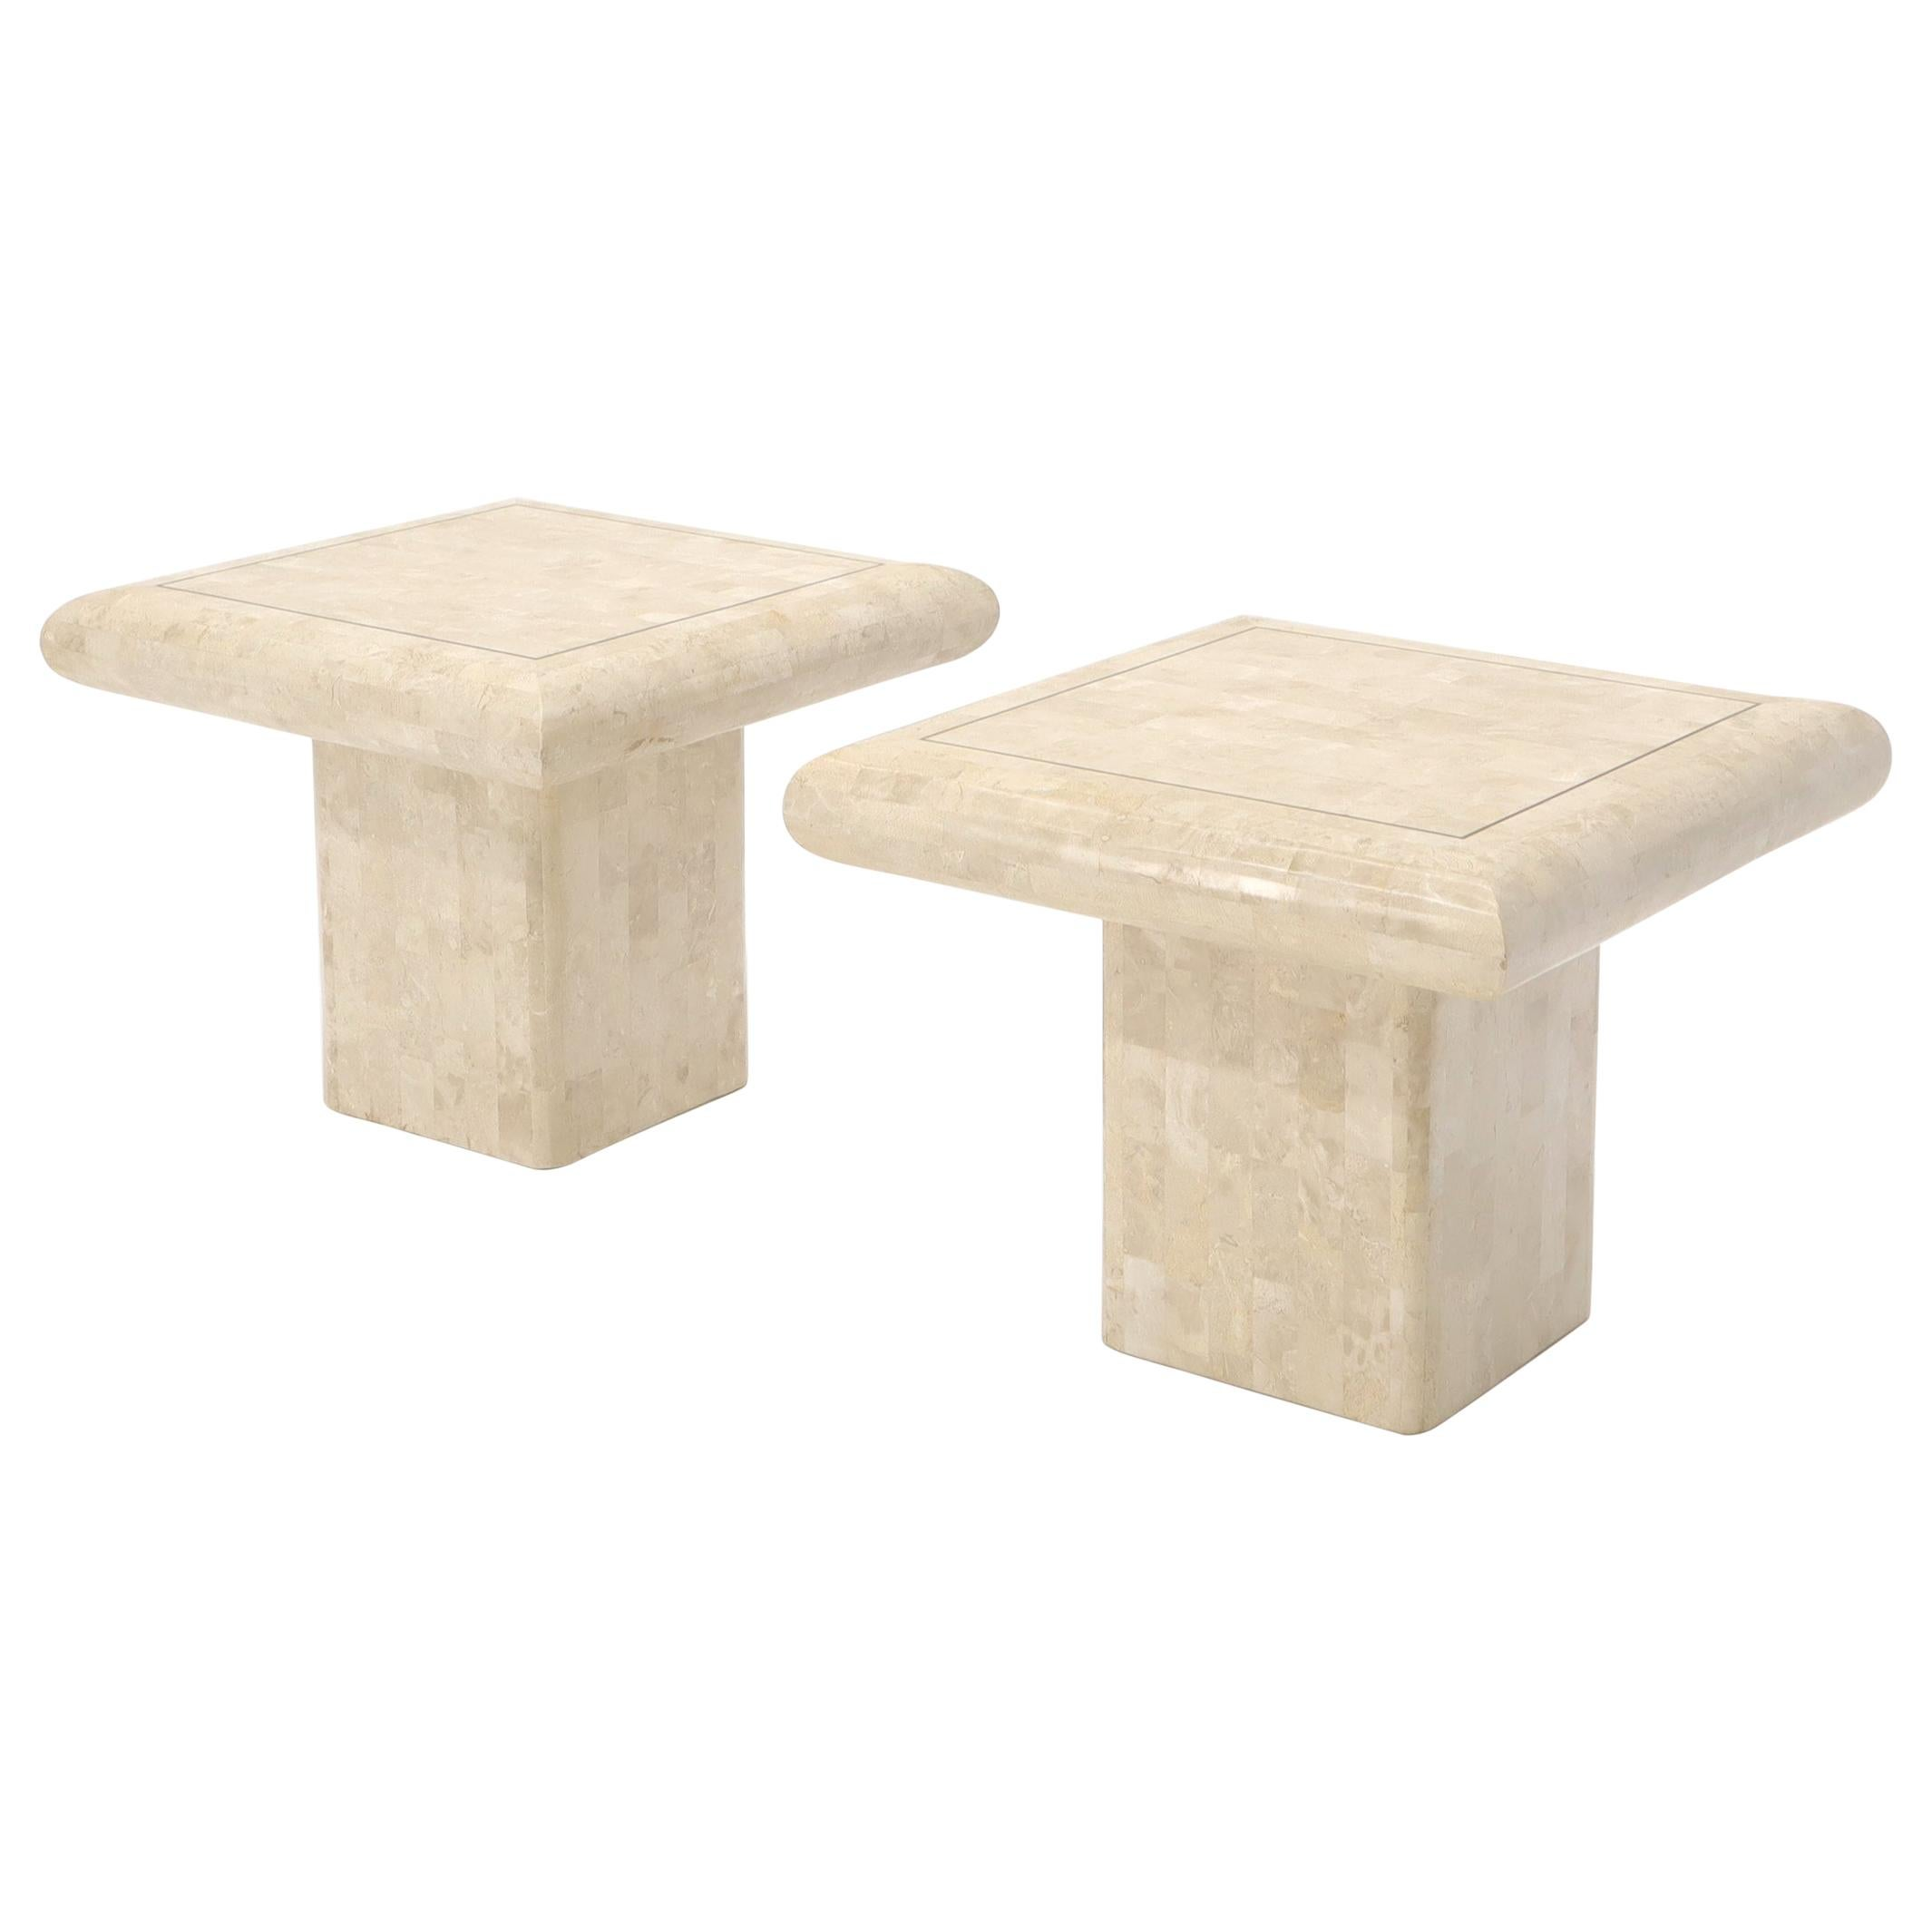 Pair of Square Tessellated Stone Veneer Brass Inlay End Tables Stands